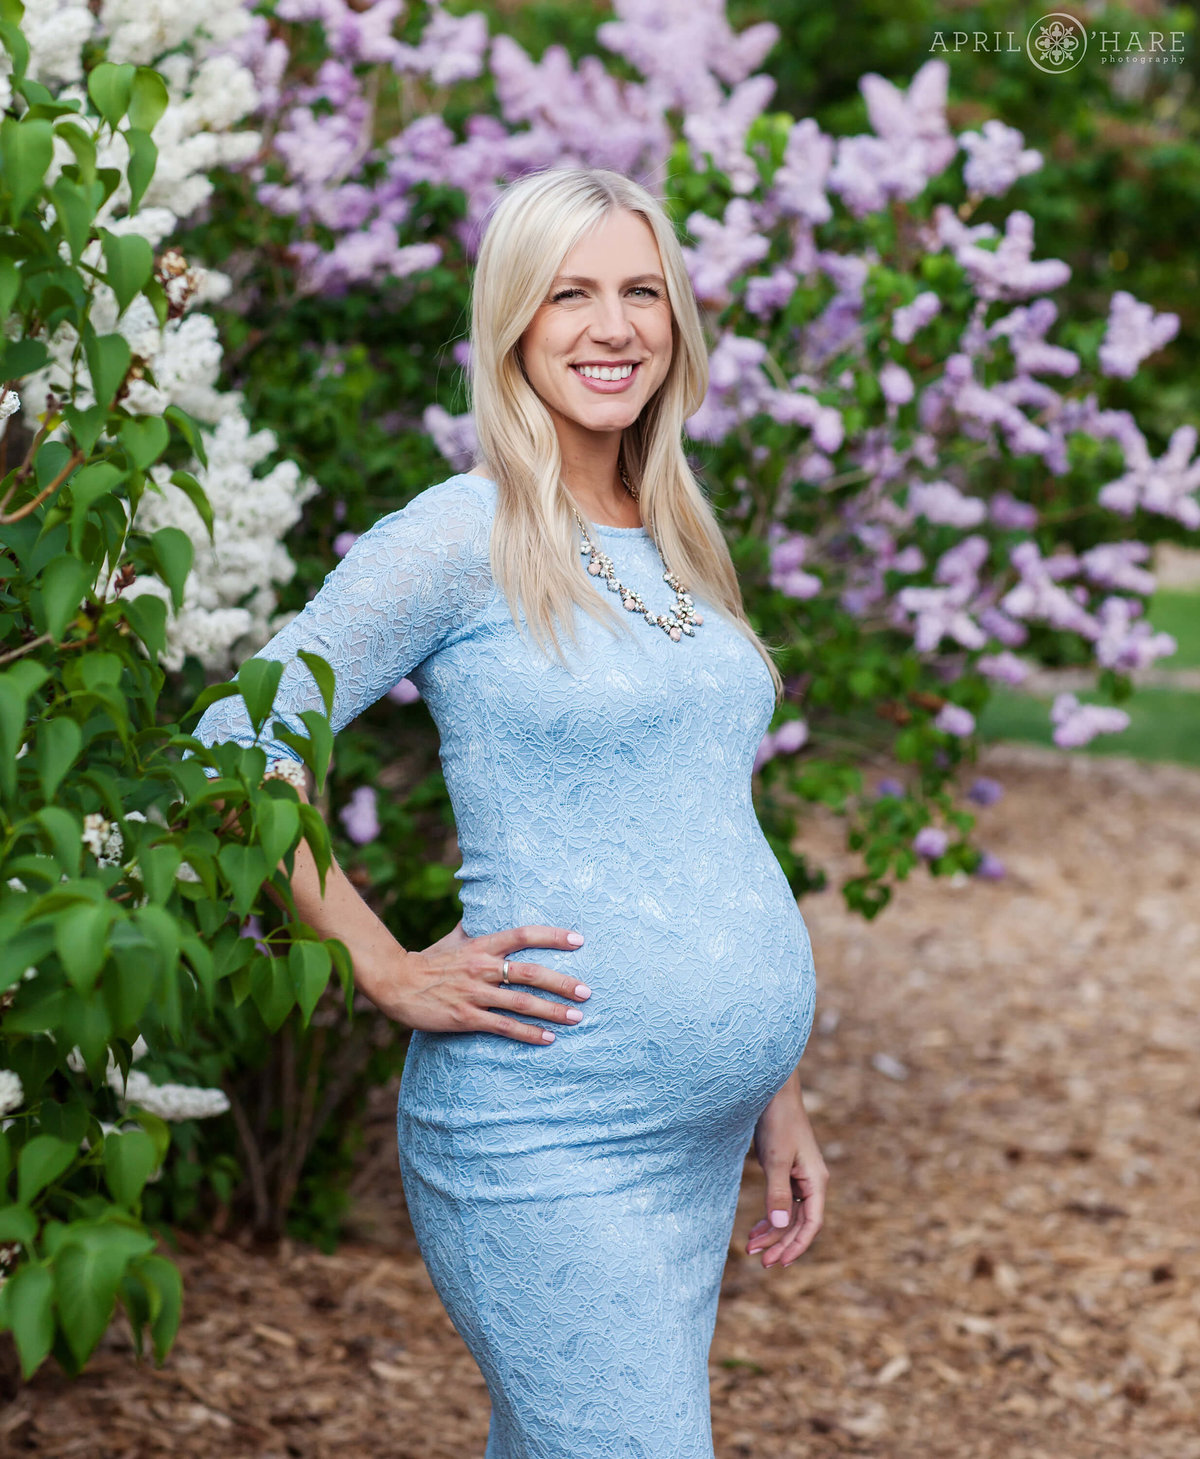 City-Park-Denver-Colorado-Maternity-Portraits-During-Spring-Blossoms-11